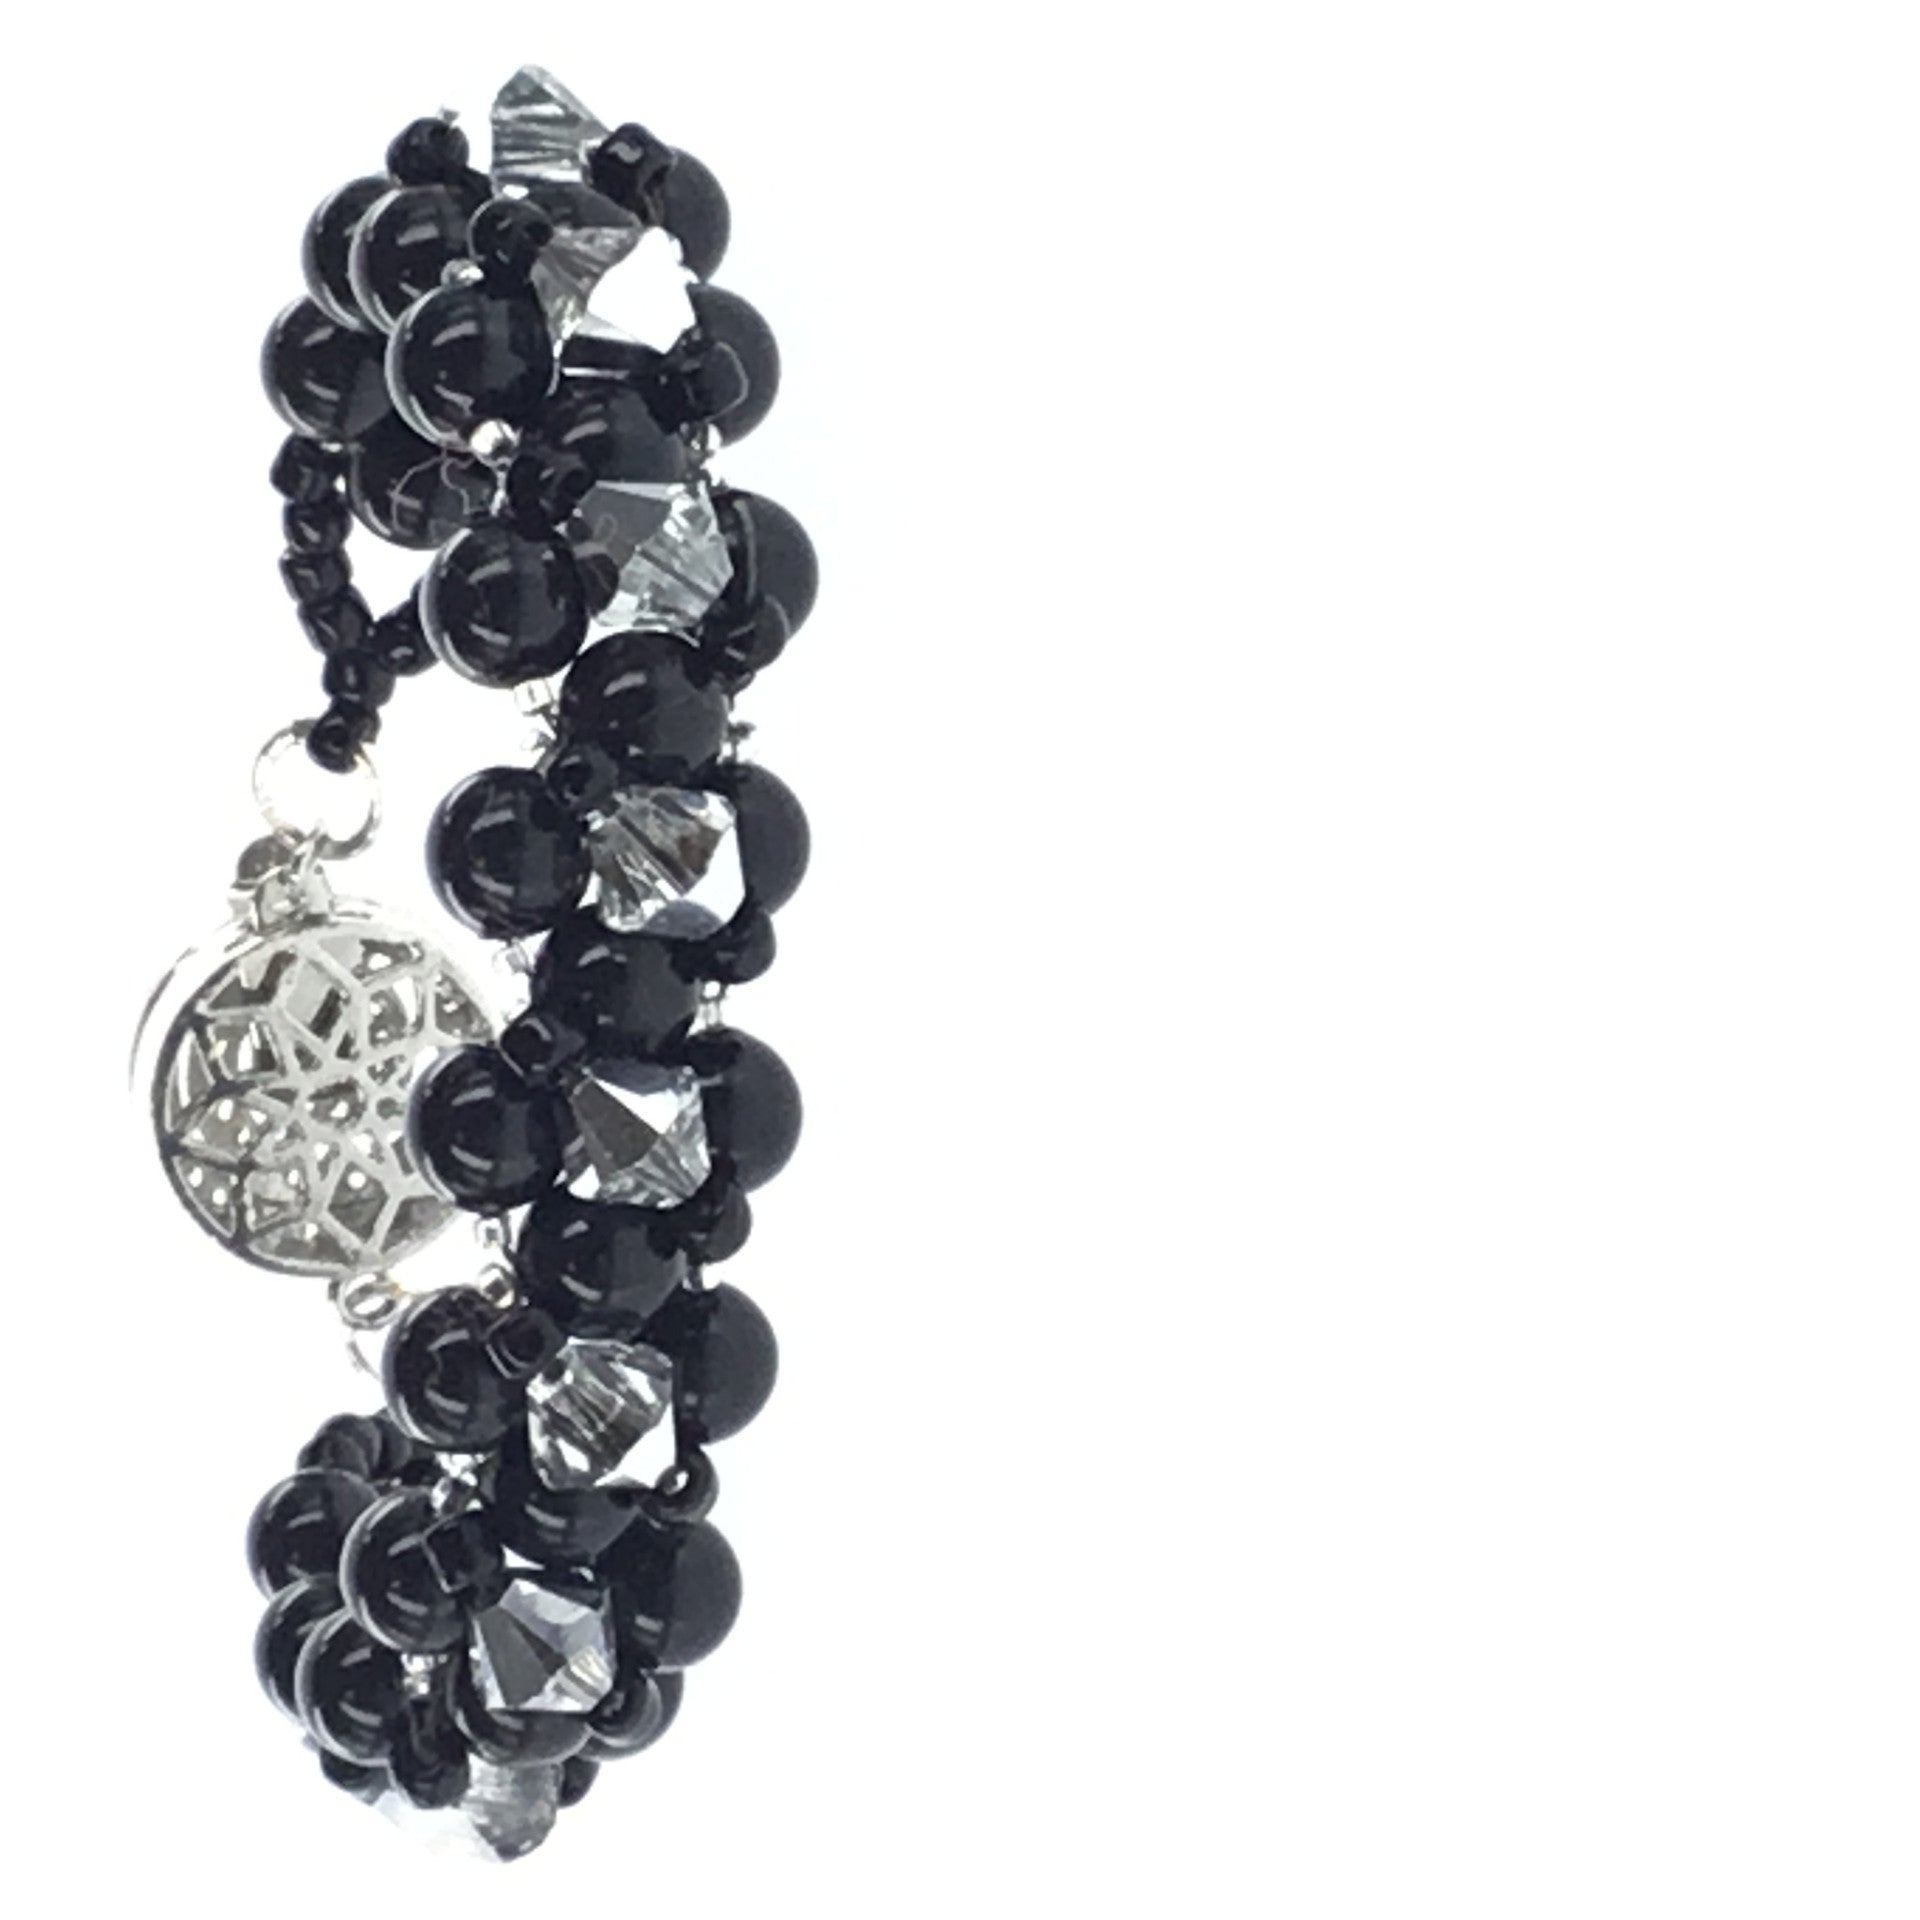 Swarovski Black Pearl and Crystal Bracelet - Real Chic Boutique  - 5